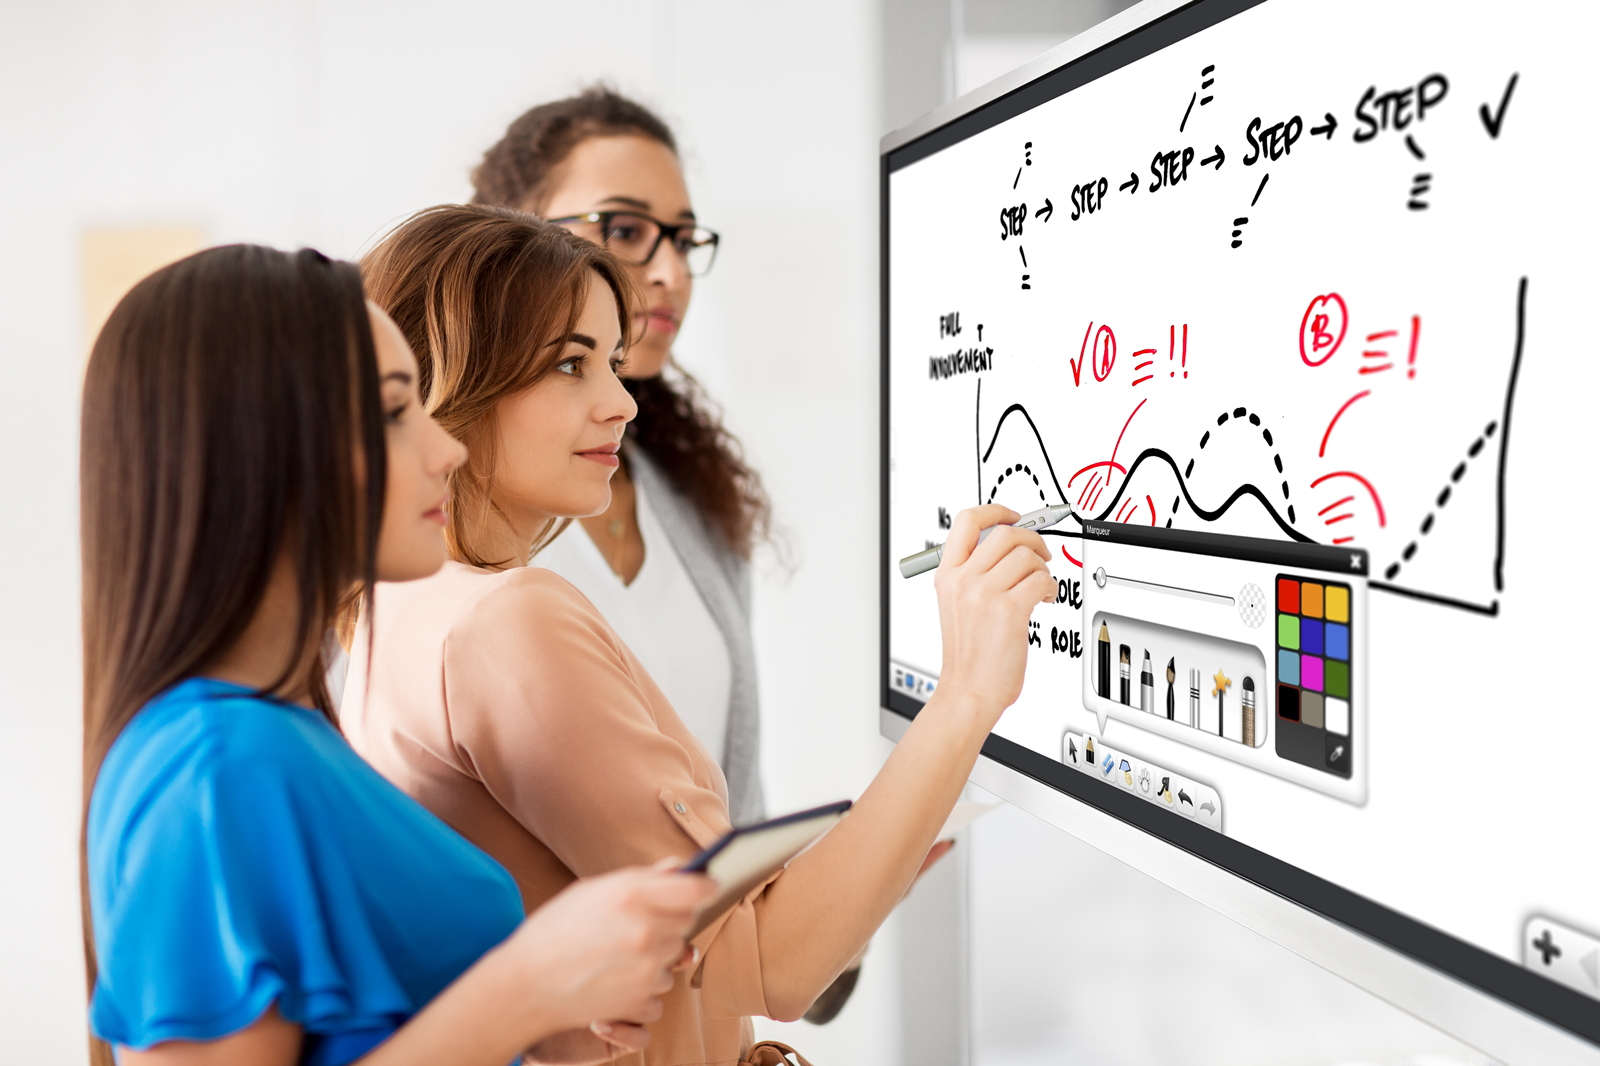 Using csubtil interactive touchscreen as whiteboard during meeting